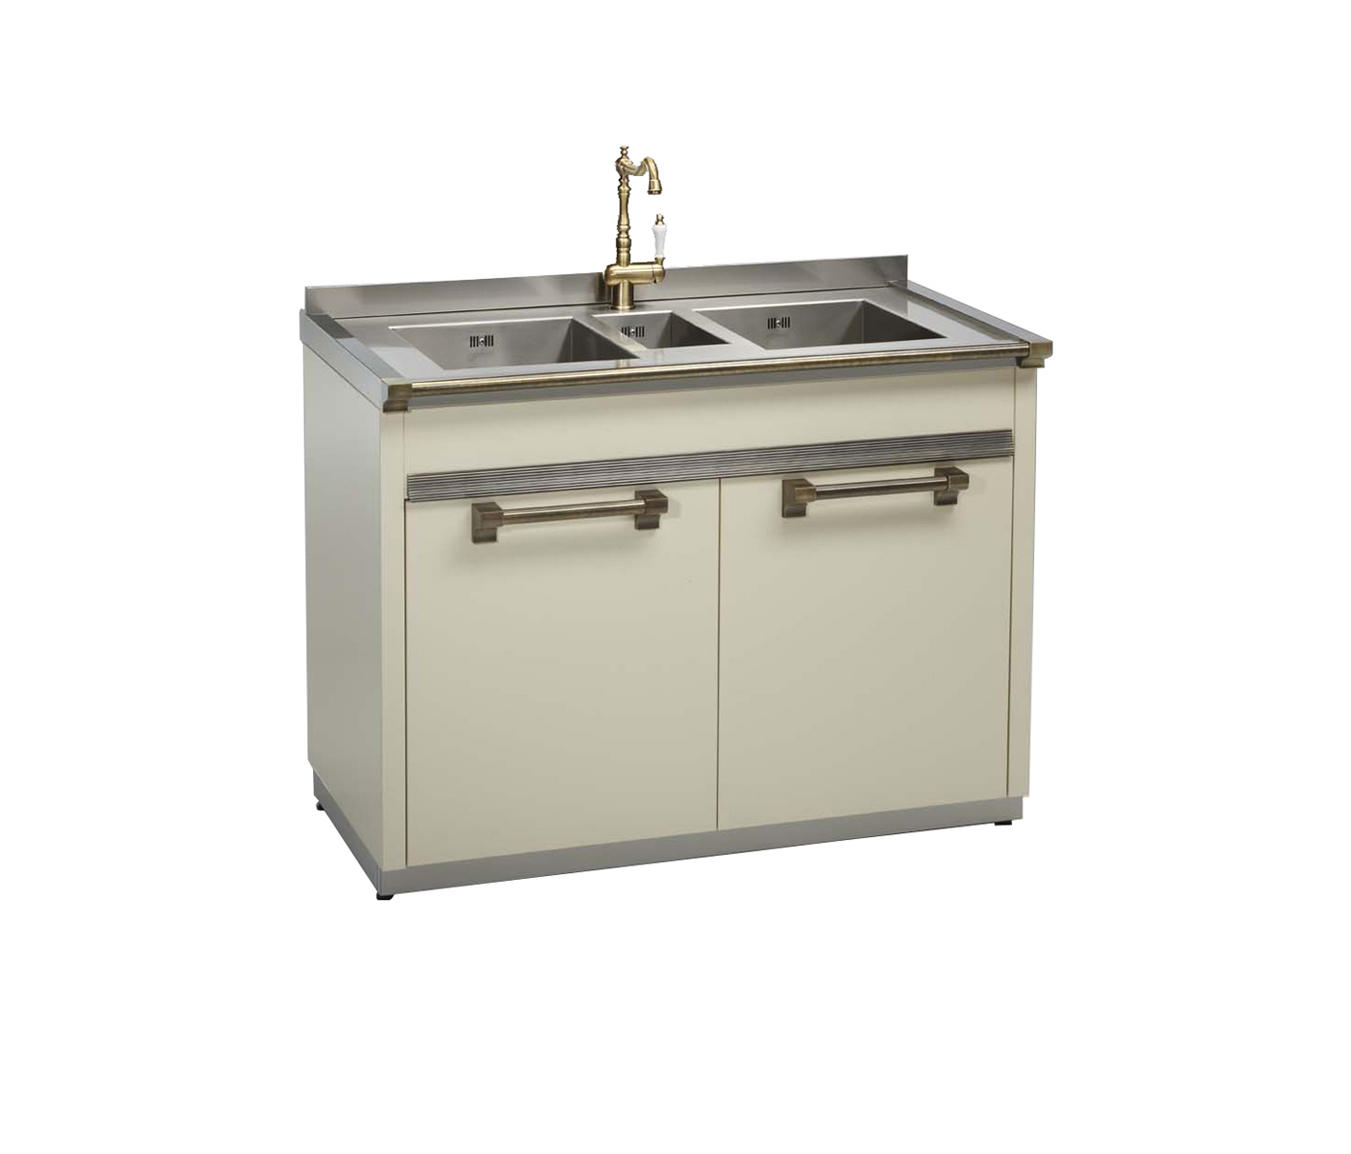 ASCOT - 3 BOWL SINK UNIT - Kitchen sinks from Steel | Architonic